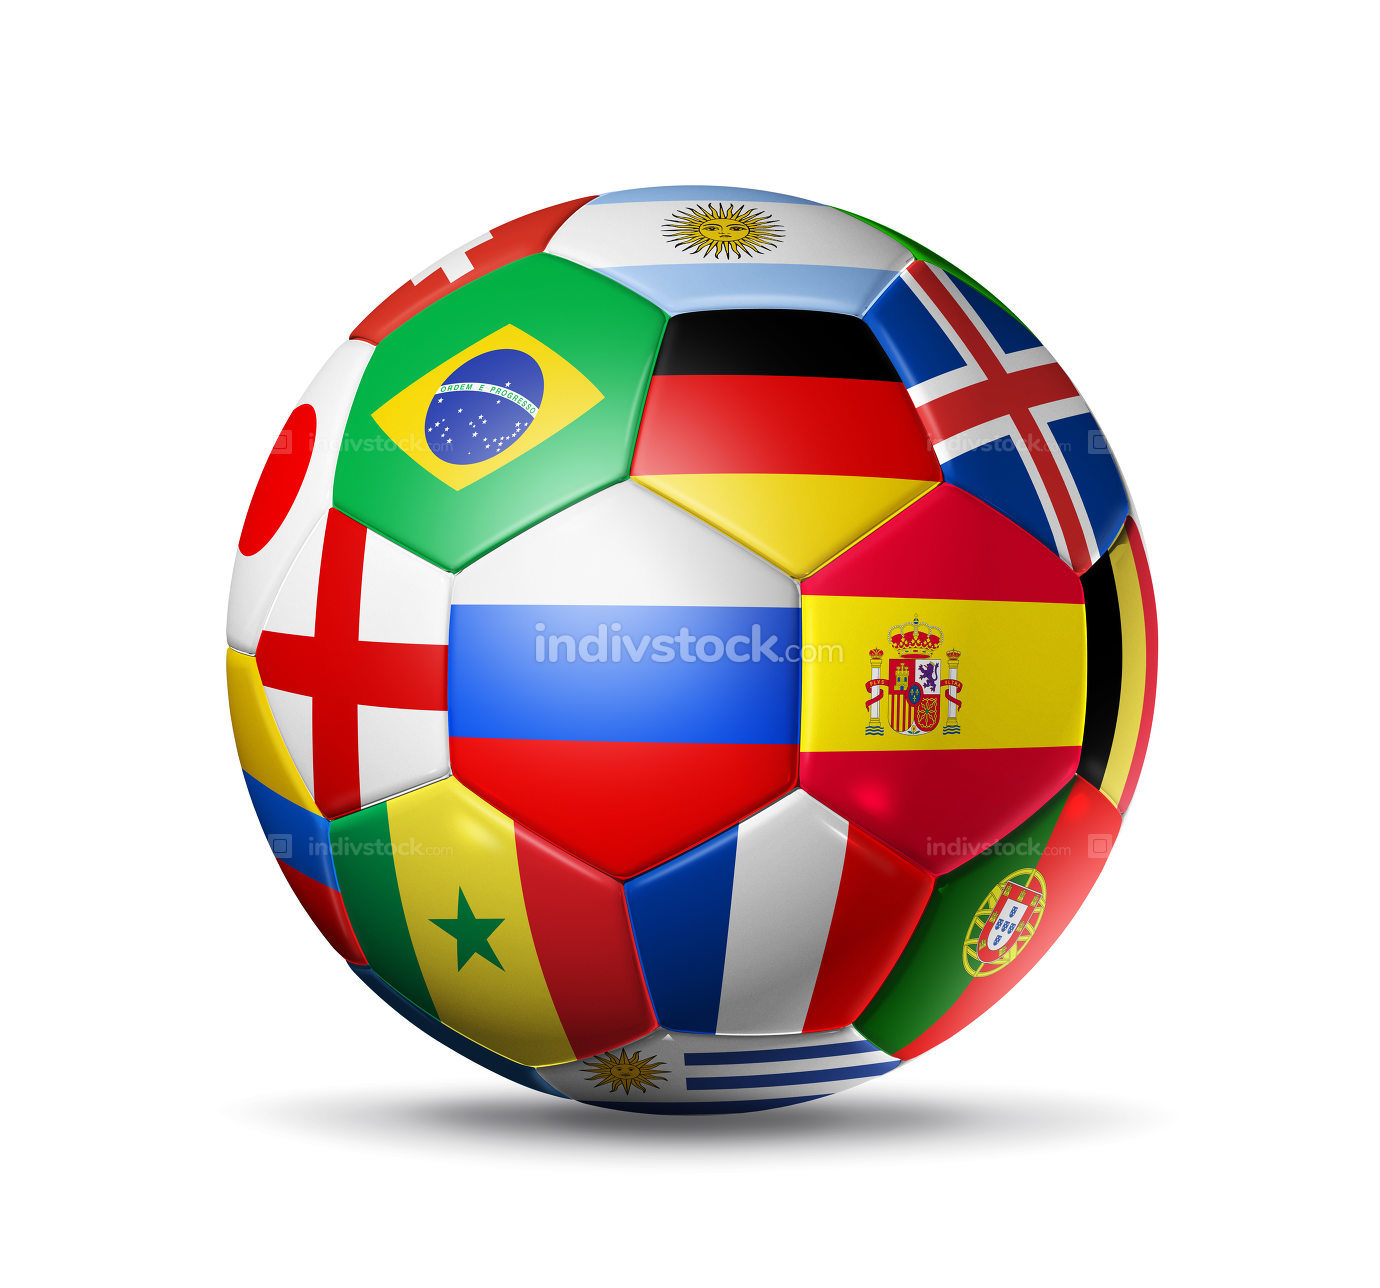 Russia 2018. Football soccer ball with team national flags on wh